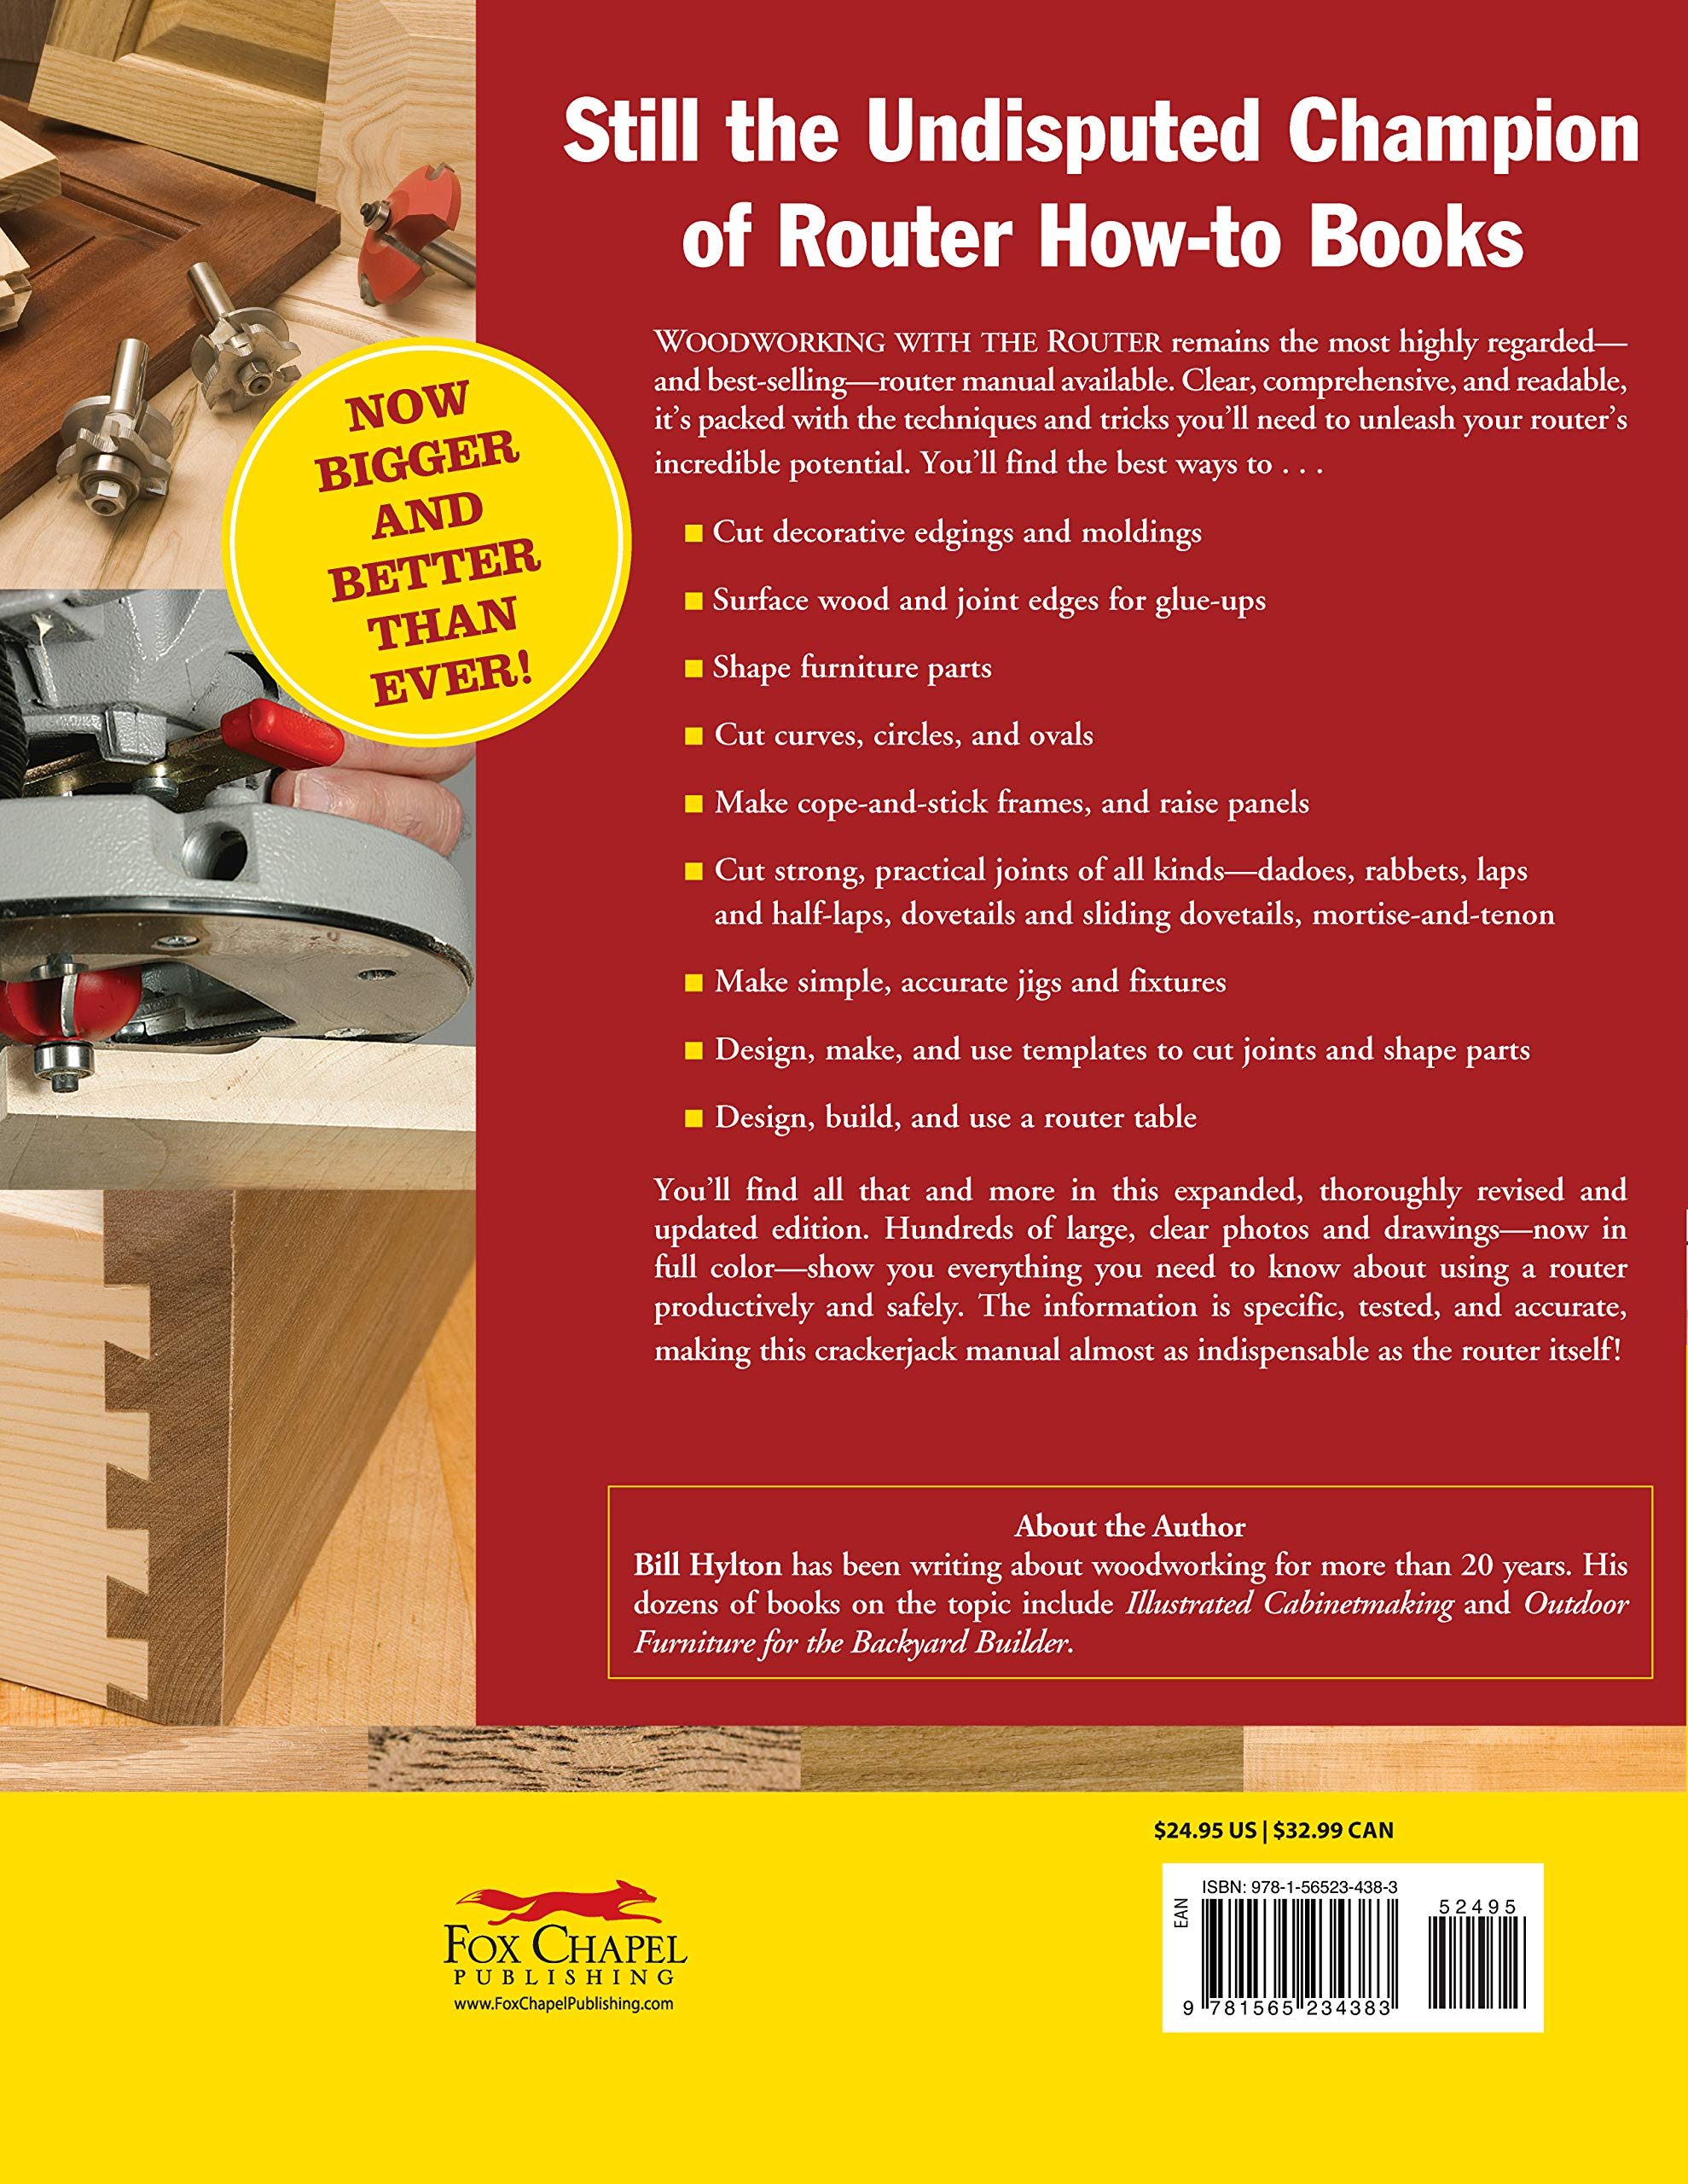 Woodworking With The Router Revised And Updated Professional Router Techniques And Jigs Any Woodworker Can Use Fox Chapel Publishing Comprehensive Beginner Friendly Guide American Woodworker Hylton Bill 9781565234383 Amazon Com Books